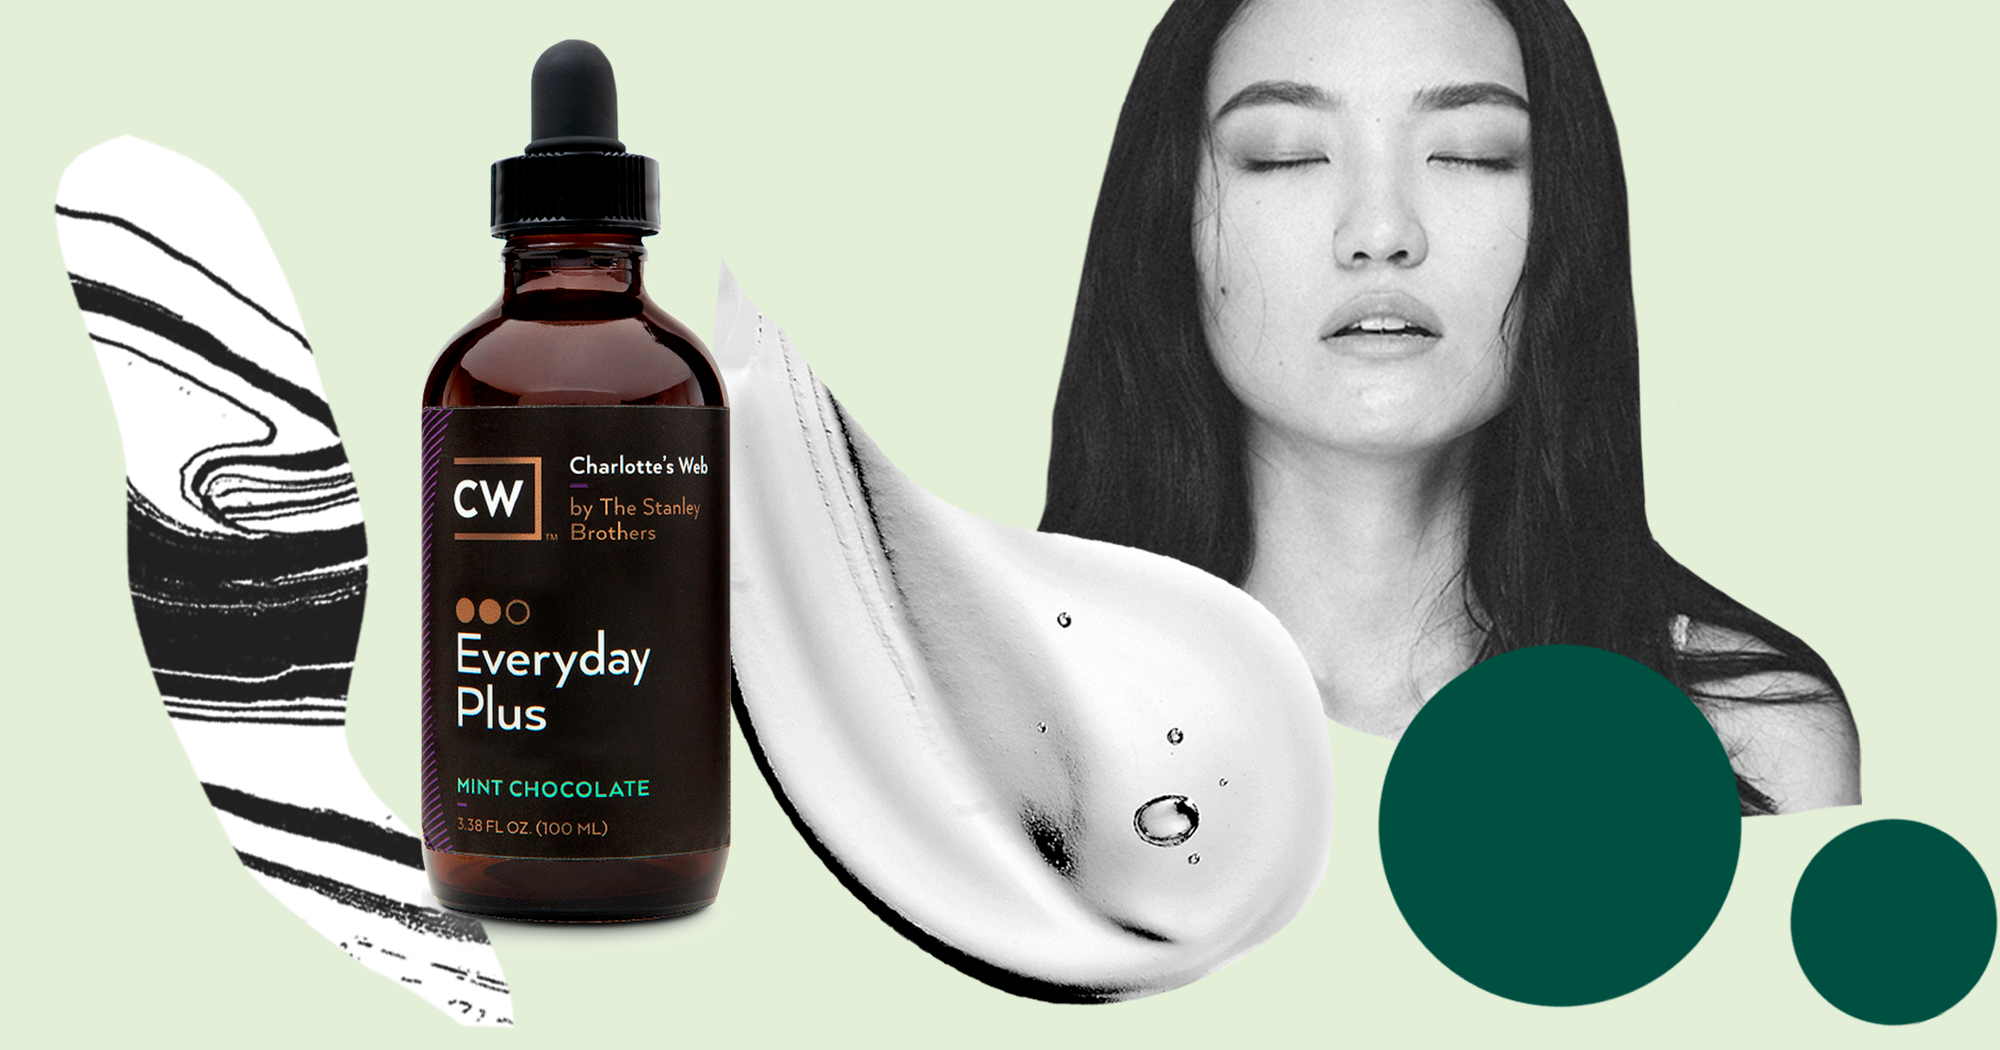 I Tried Taking CBD Oil For My Anxiety To See If It Made Me Calmer